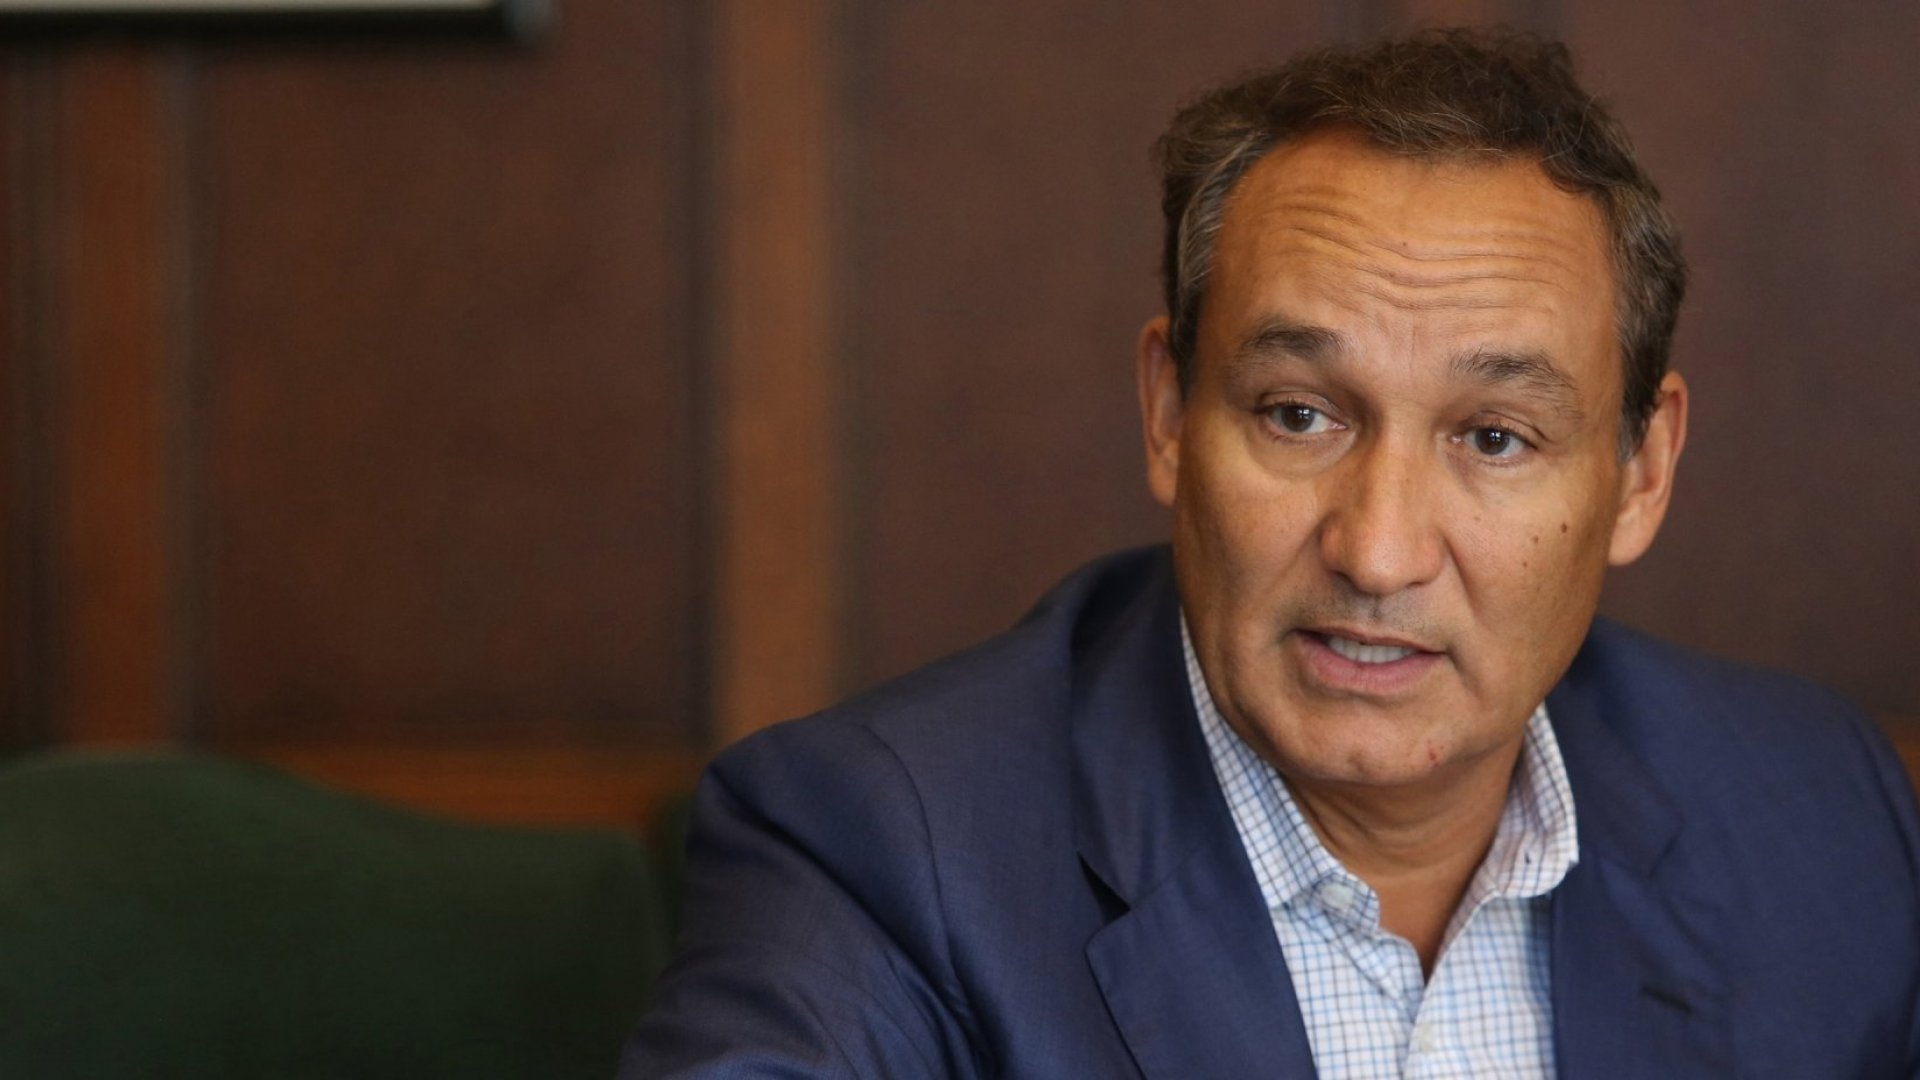 In an interview with 'Good Morning America,' United Airlines CEO Oscar Munoz said he felt 'shame' when watching viral videos of a passenger being dragged from his seat aboard a flight.